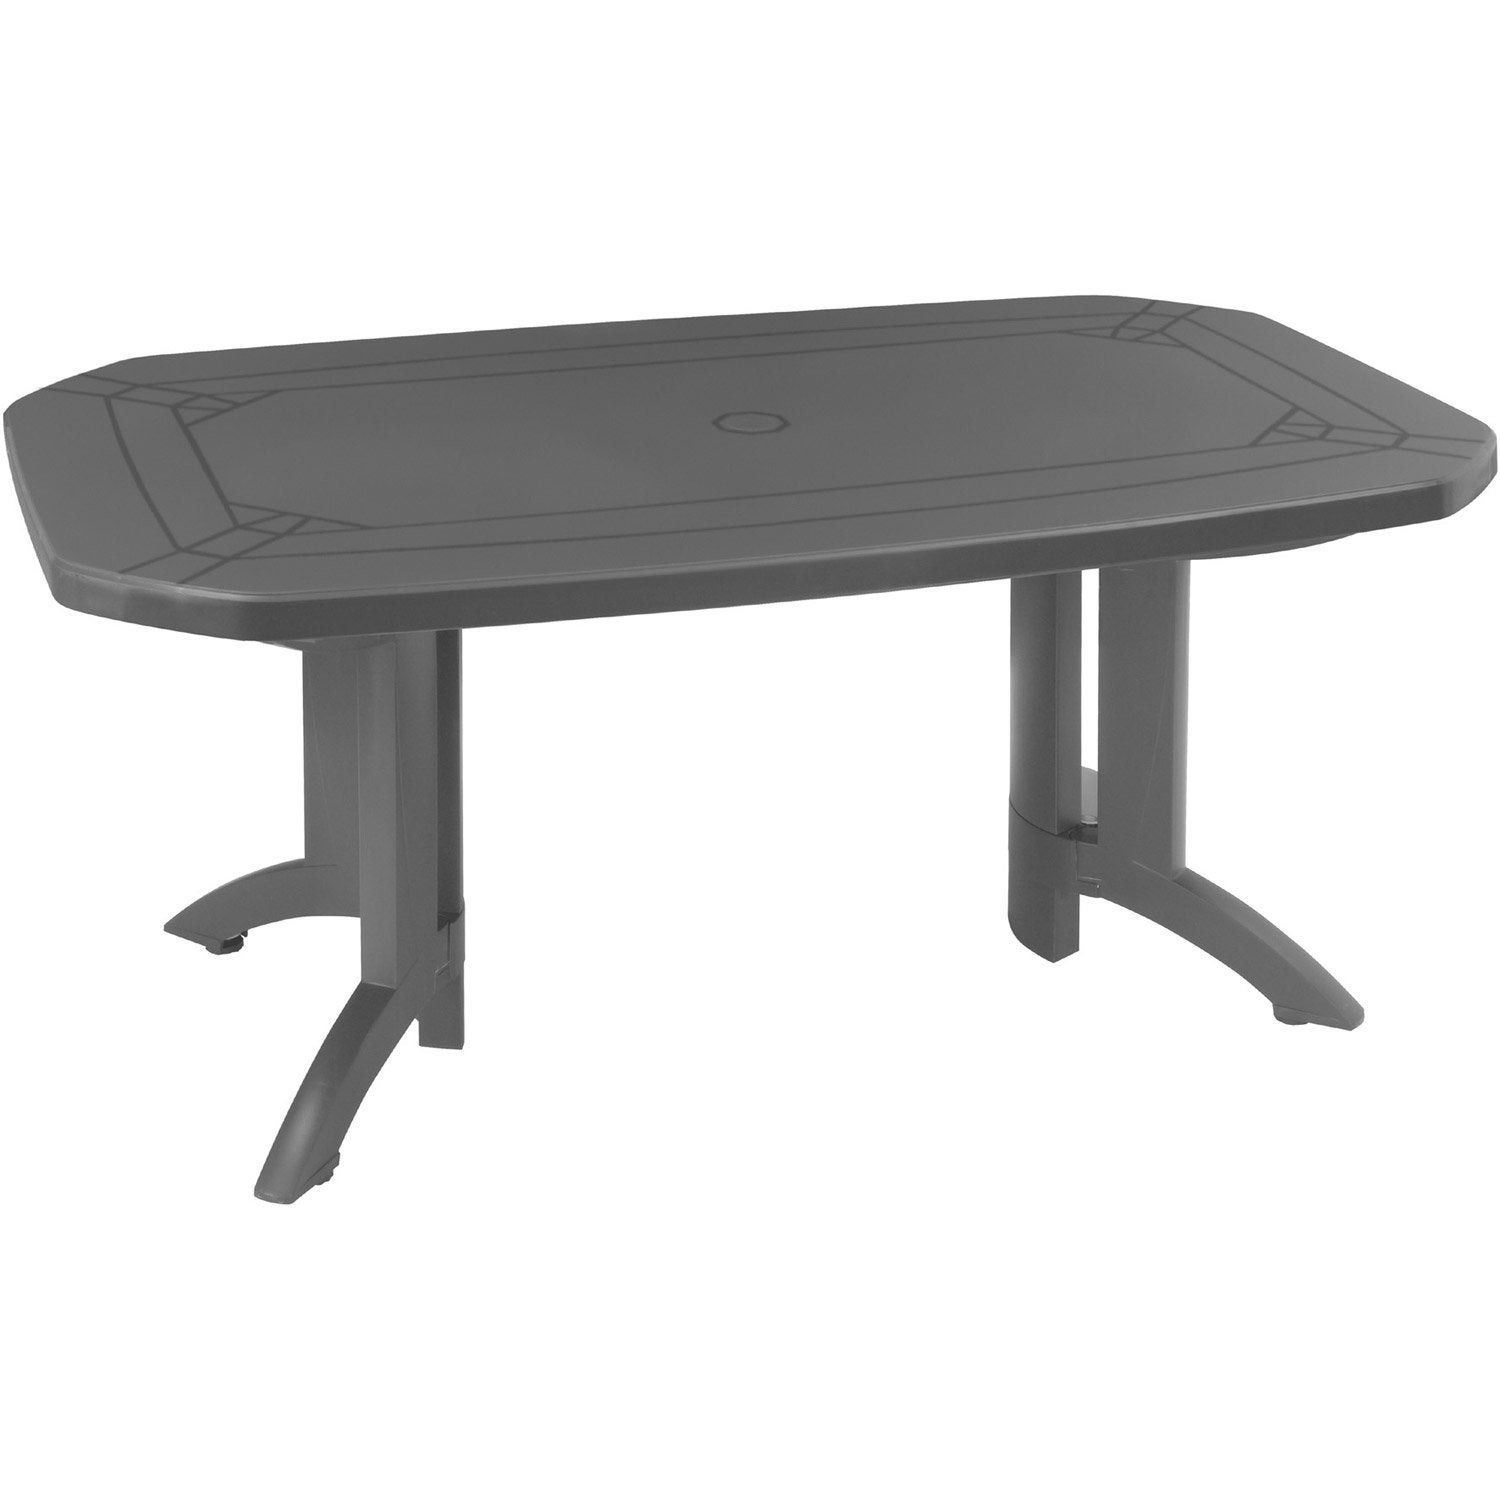 Table de jardin rectangulaire v ga grosfillex leroy merlin Table de jardin plastique taupe